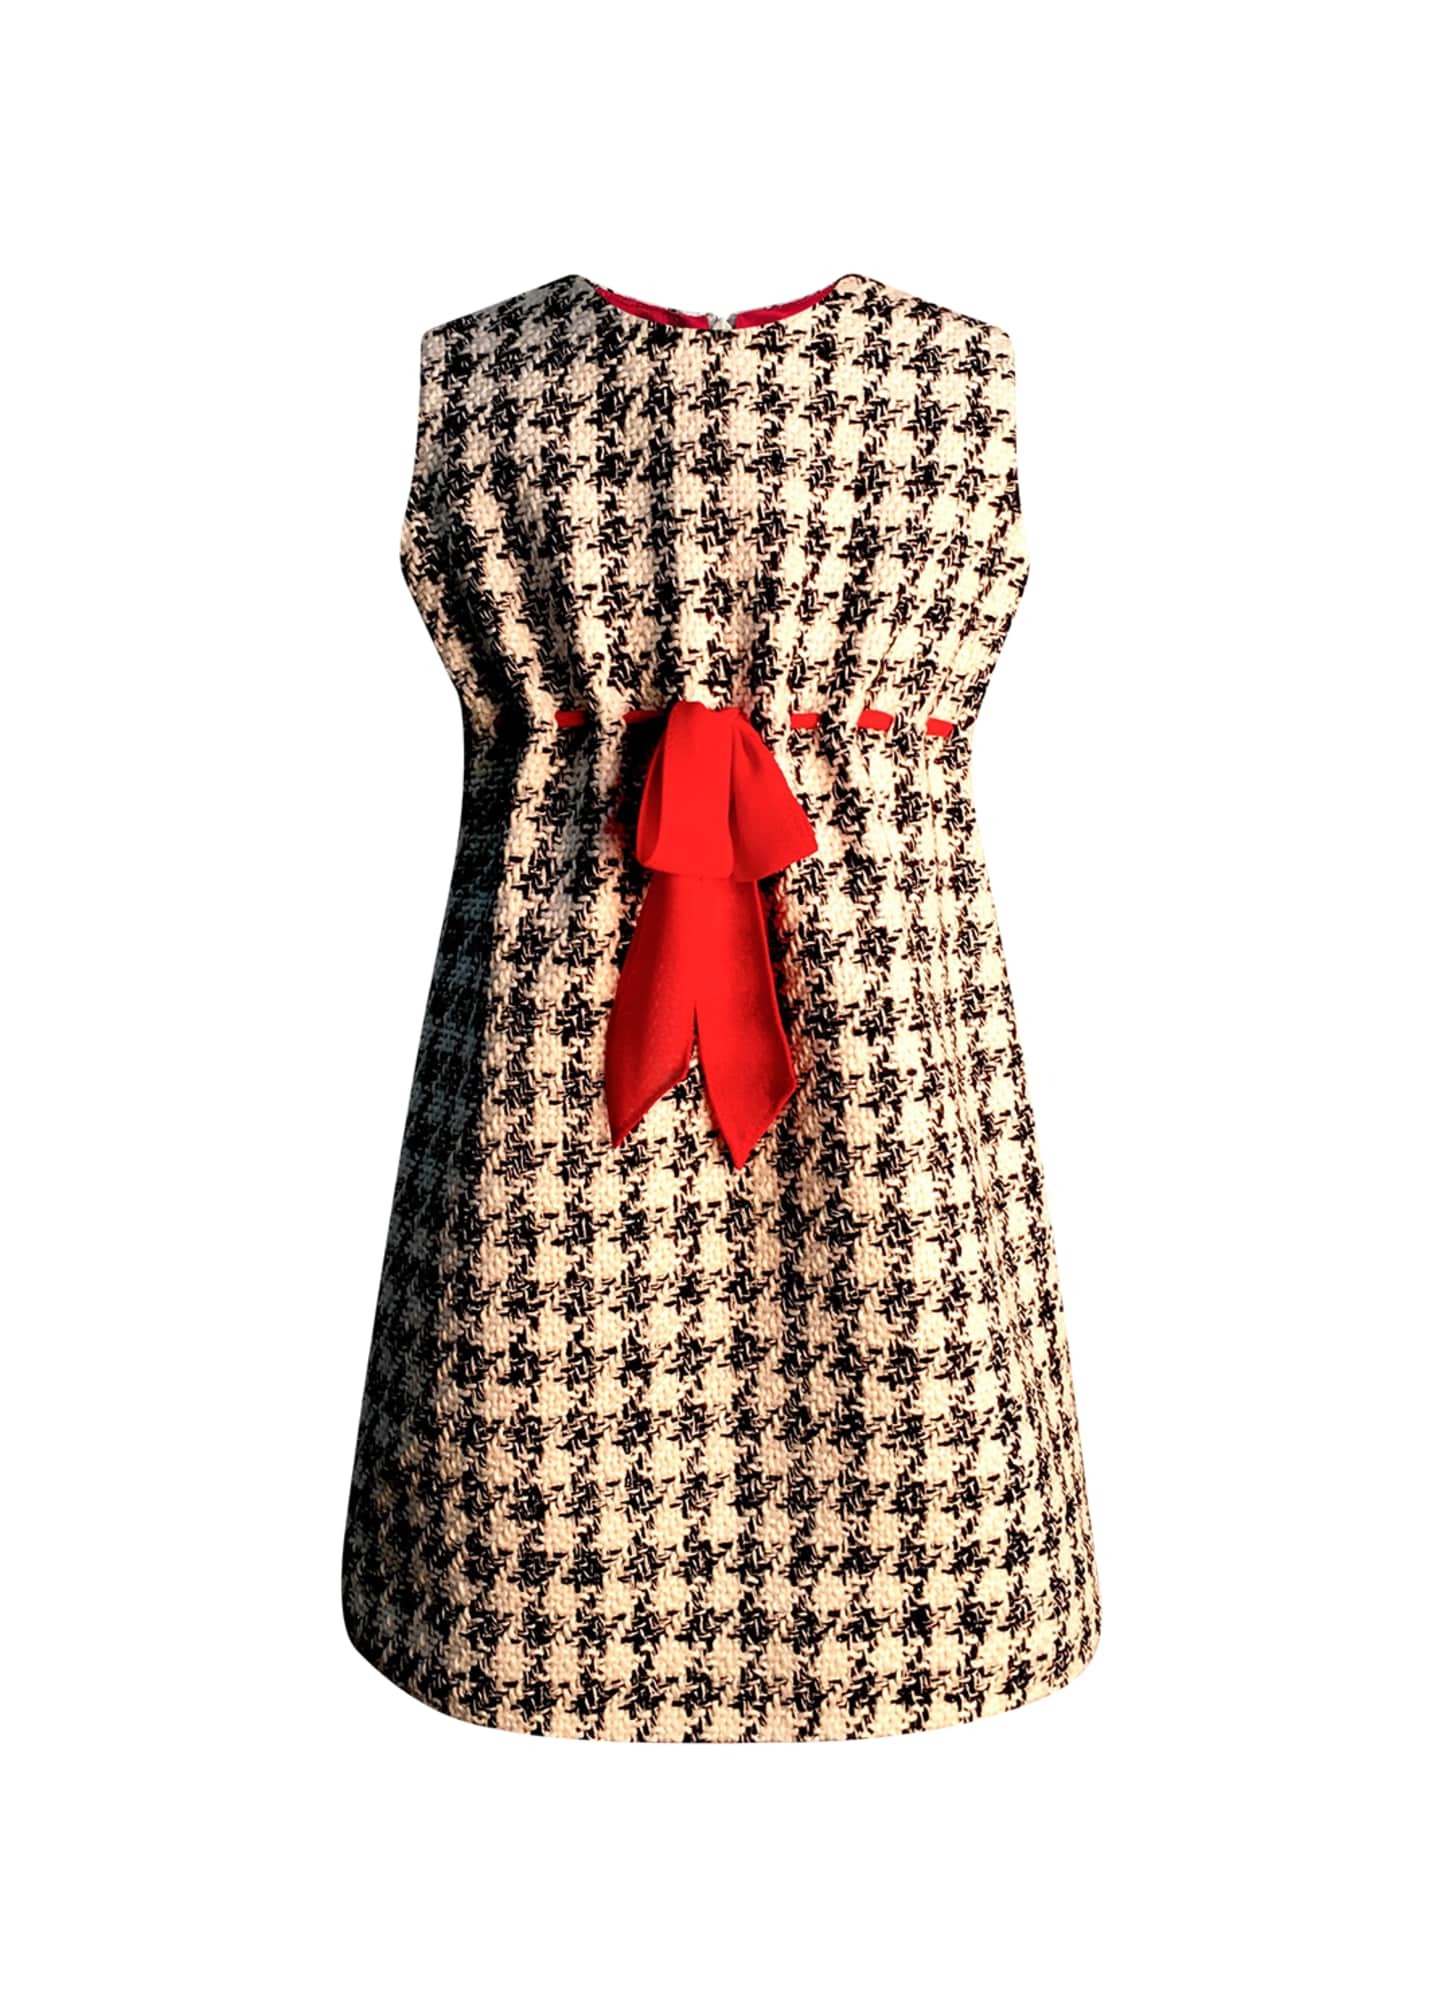 Helena Girl's Houndstooth Sleeveless Belted Dress, Size 7-14